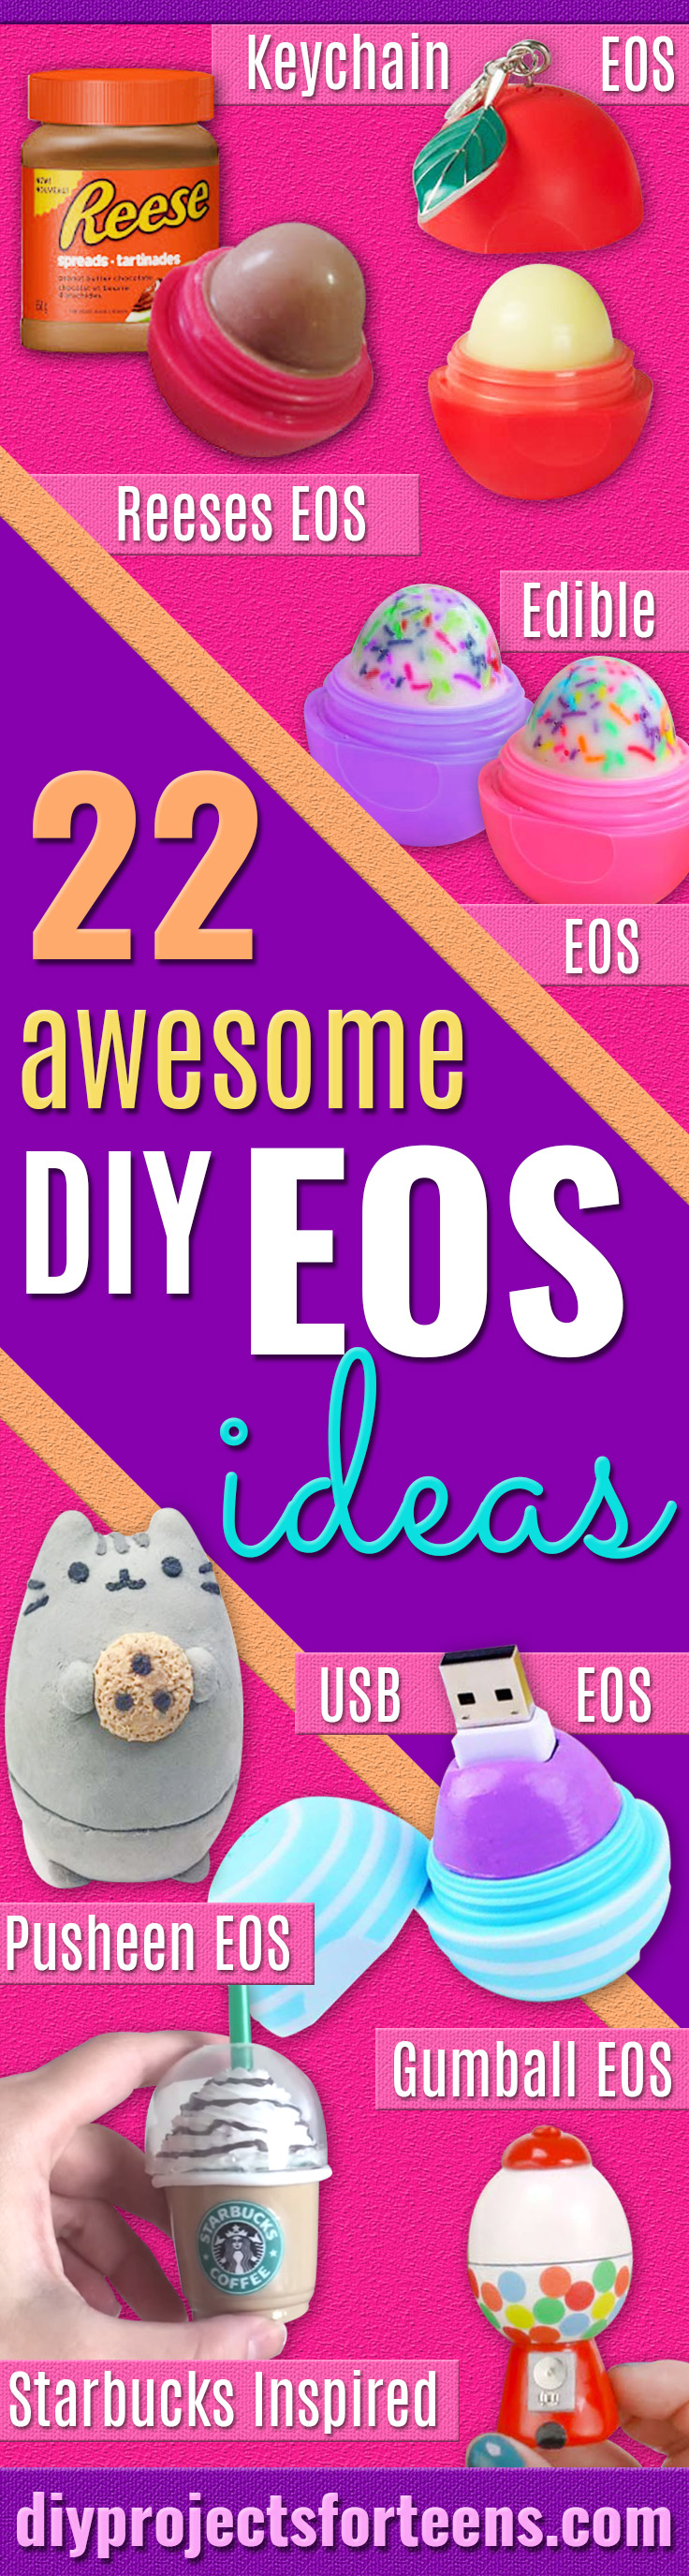 22 Most Awesome DIY EOS ideas - Best DIY EOS Projects - DIY Secret Eos Lip Balm Container - Turn Old EOS Containers Into Cool Crafts Ideas Like Lip Balm, Galaxy, Gumball Machine, and Watermelon - Fun, Cheap and Easy DIY Projects Tutorials and Videos for Teens, Tweens, Kids and Adults http://diyprojectsforteens.com/diy-eos-projects